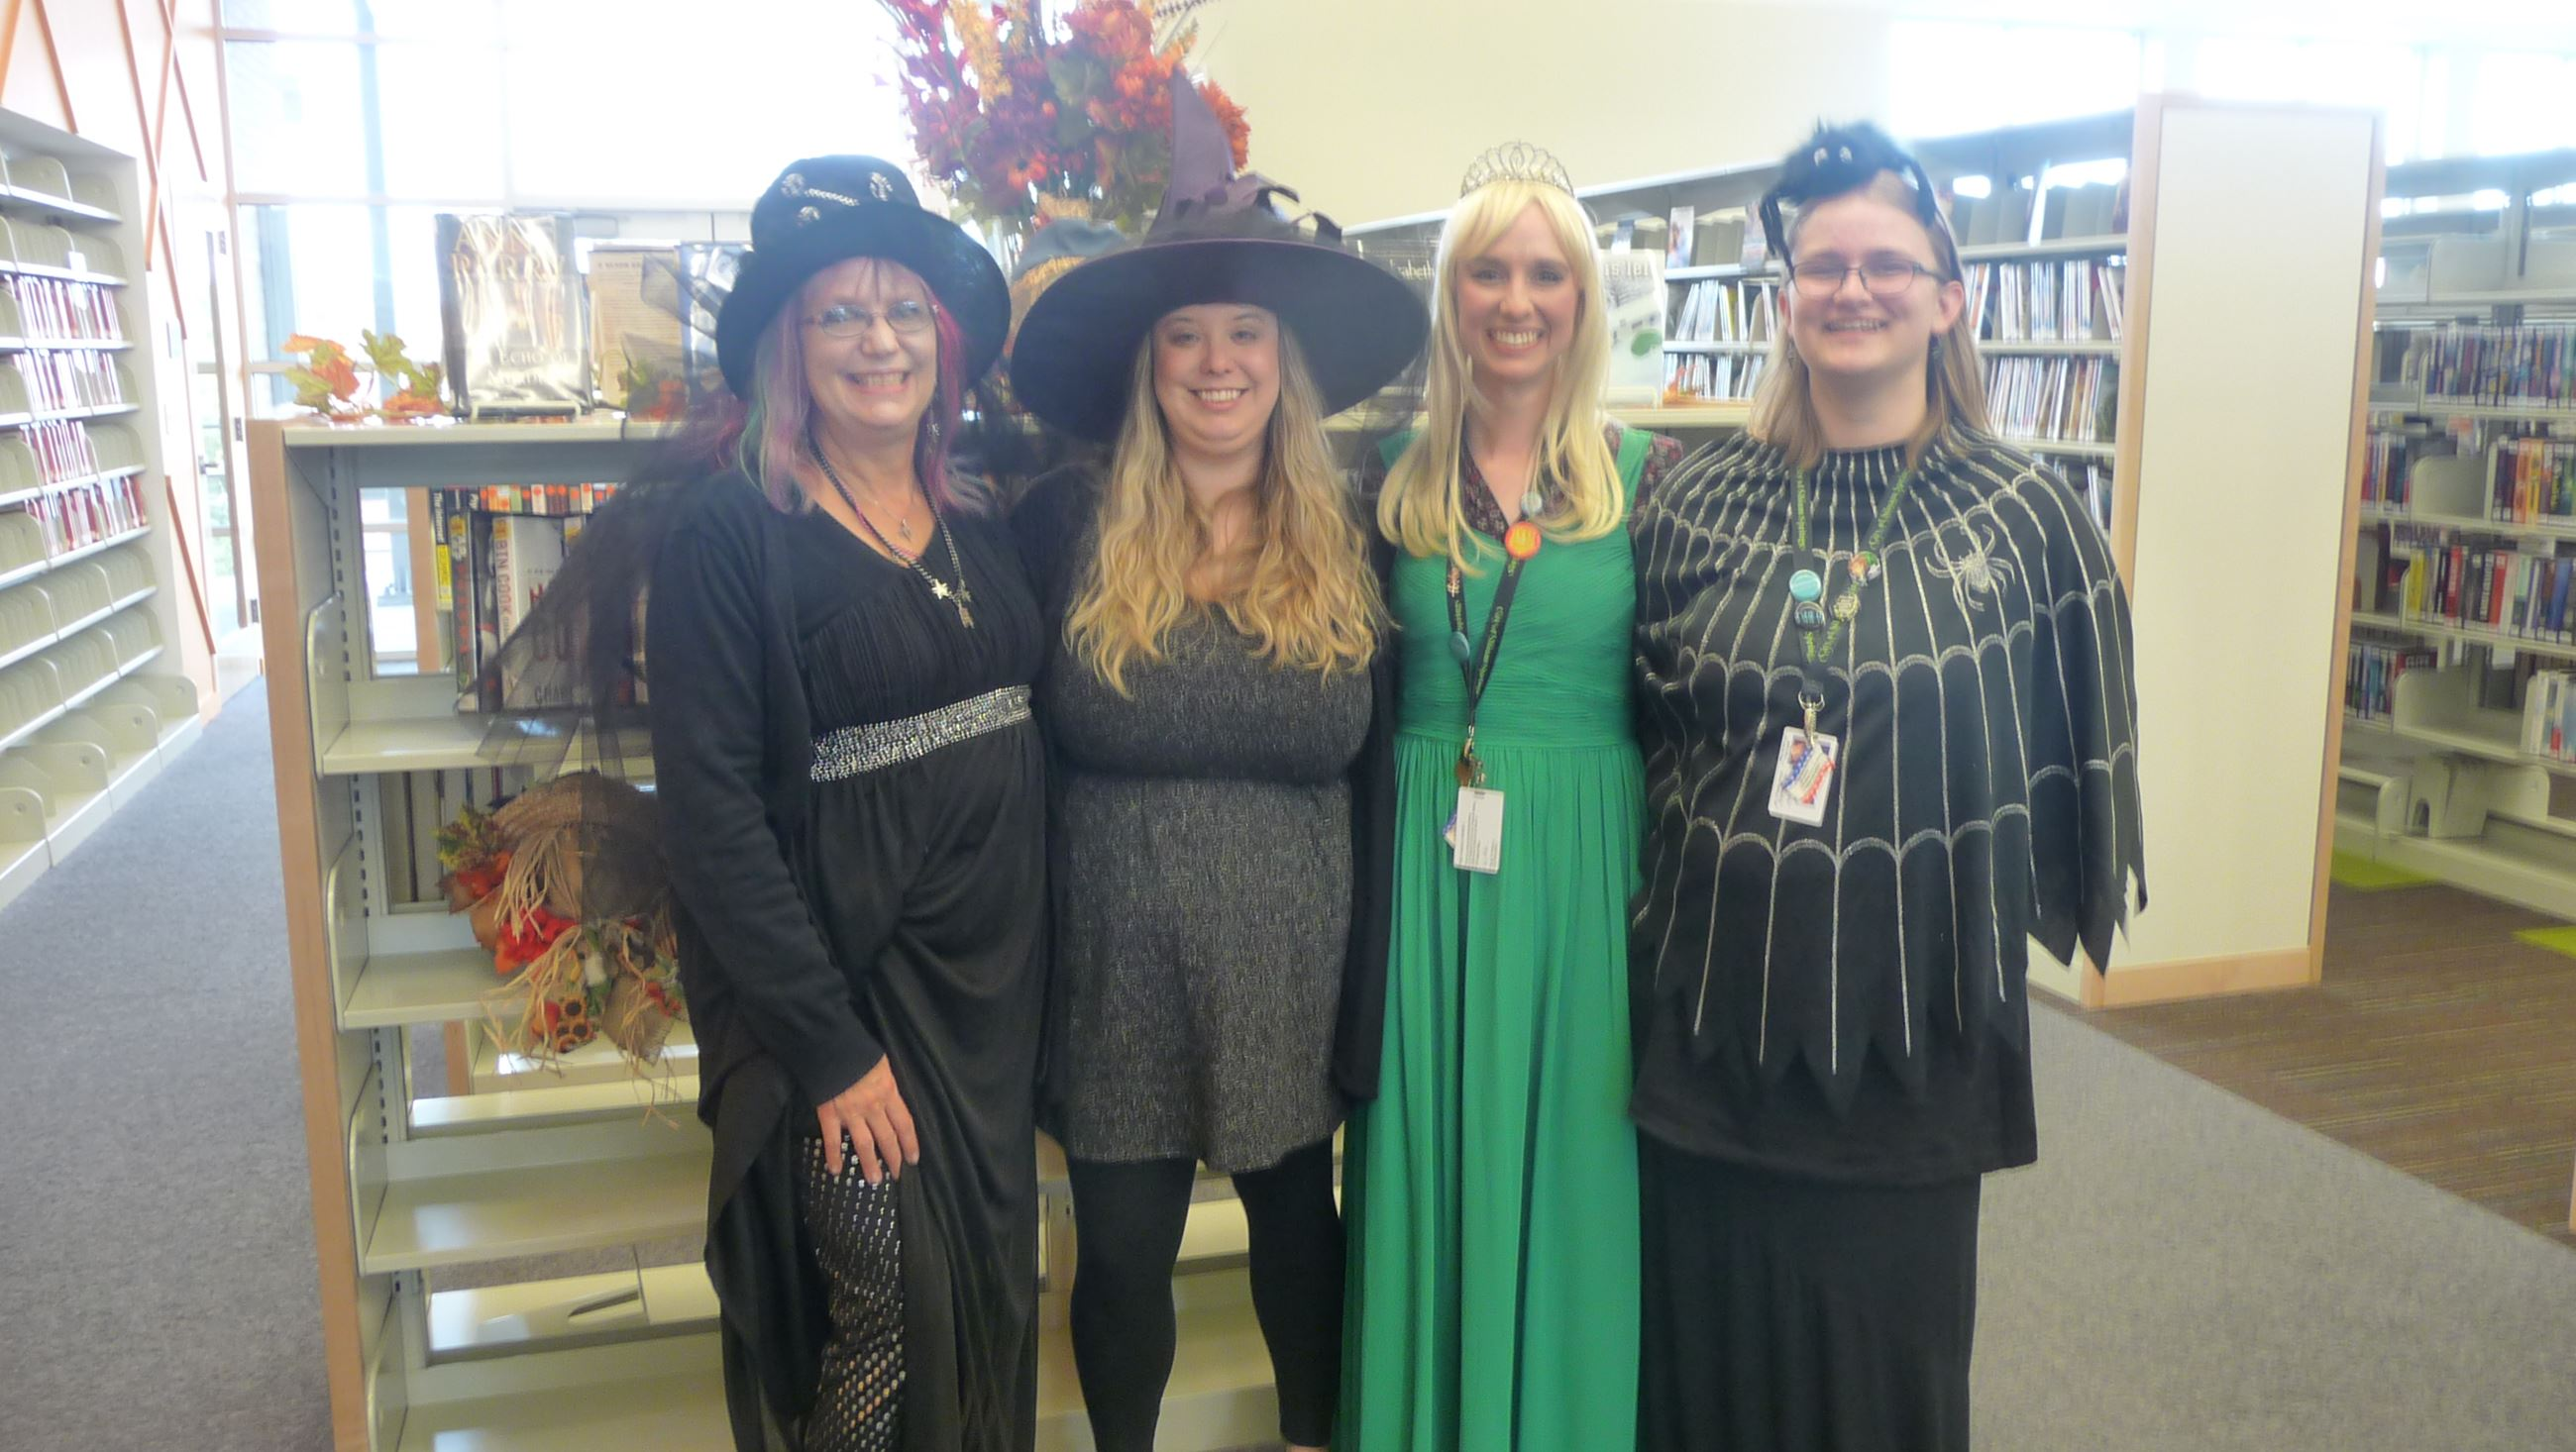 Staff in costume